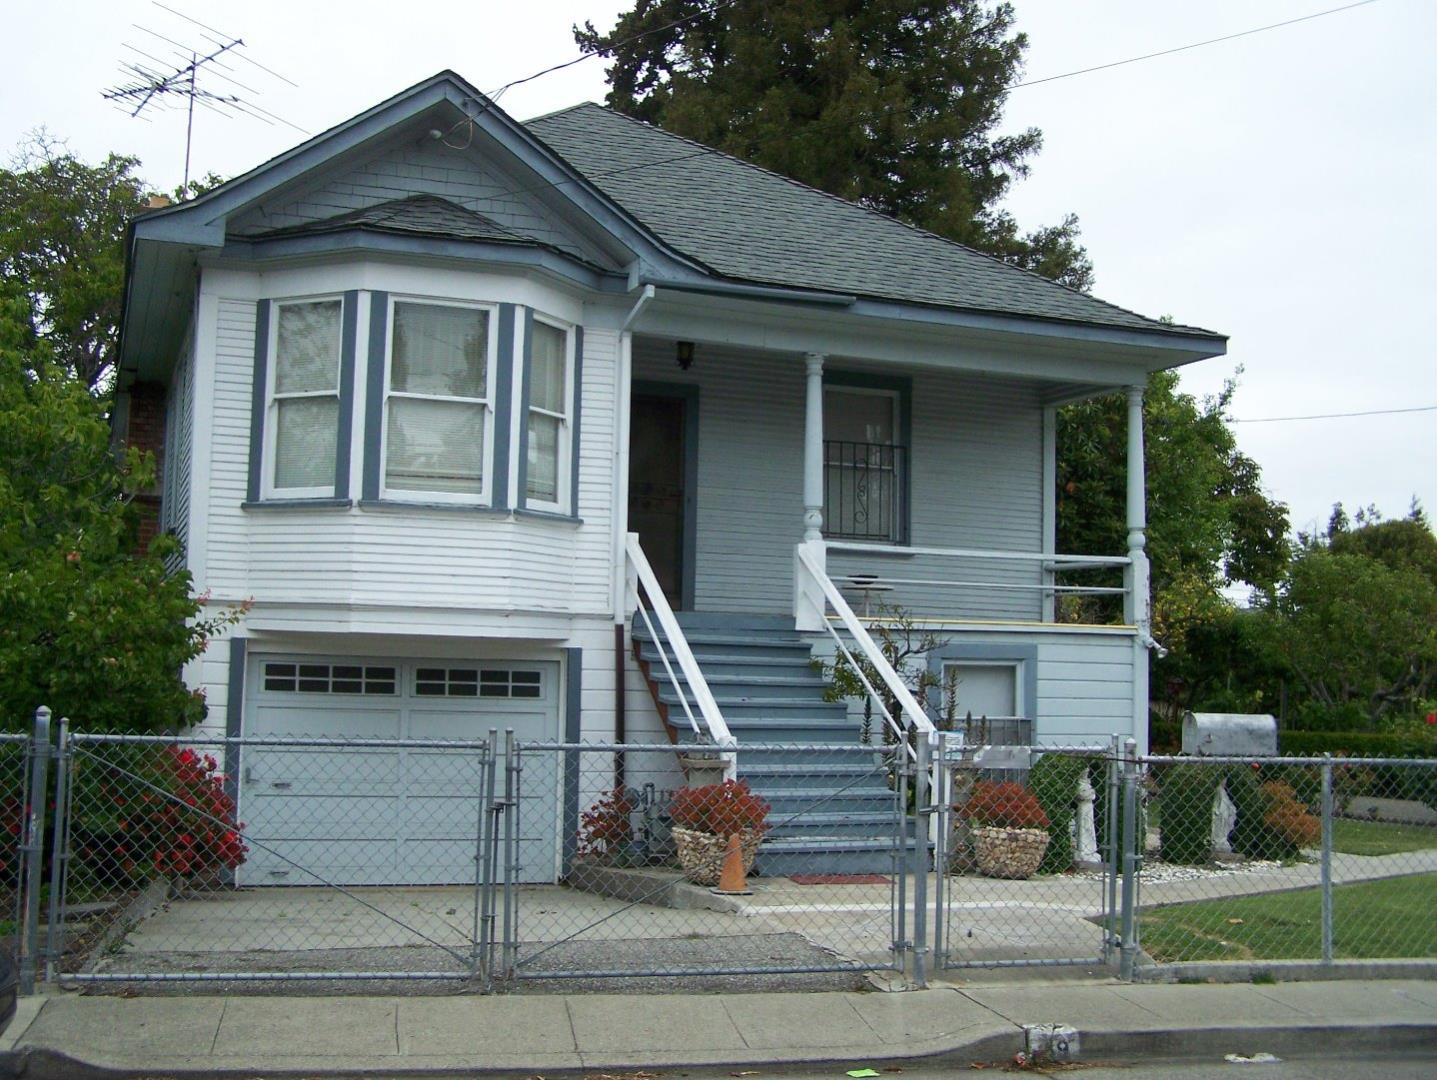 49 Orchard Ave, Redwood City, CA 94061